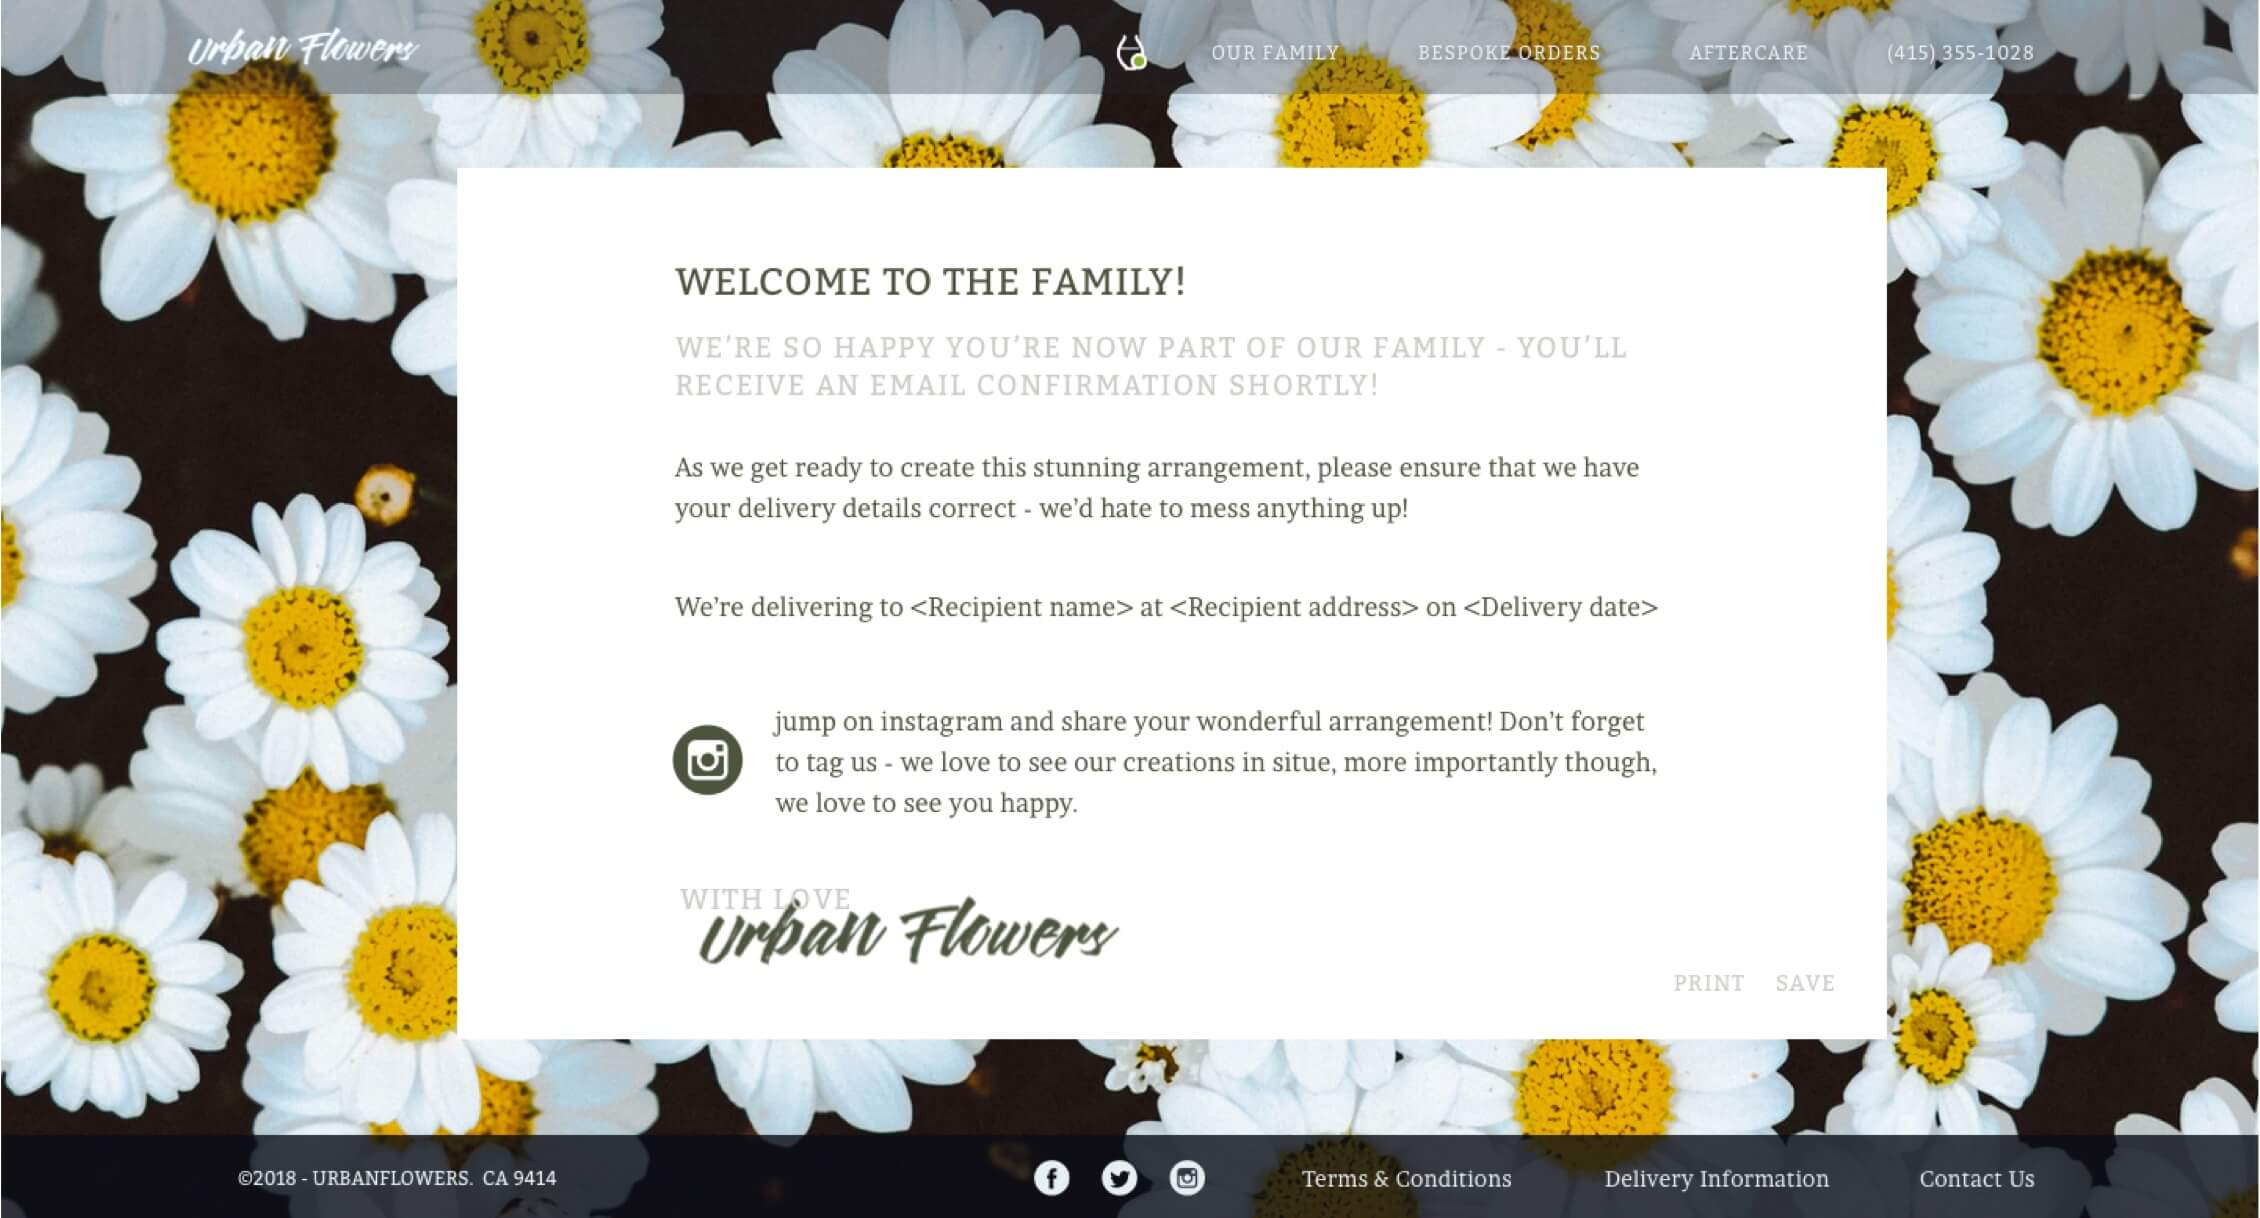 The confirmation page of the redesigned website